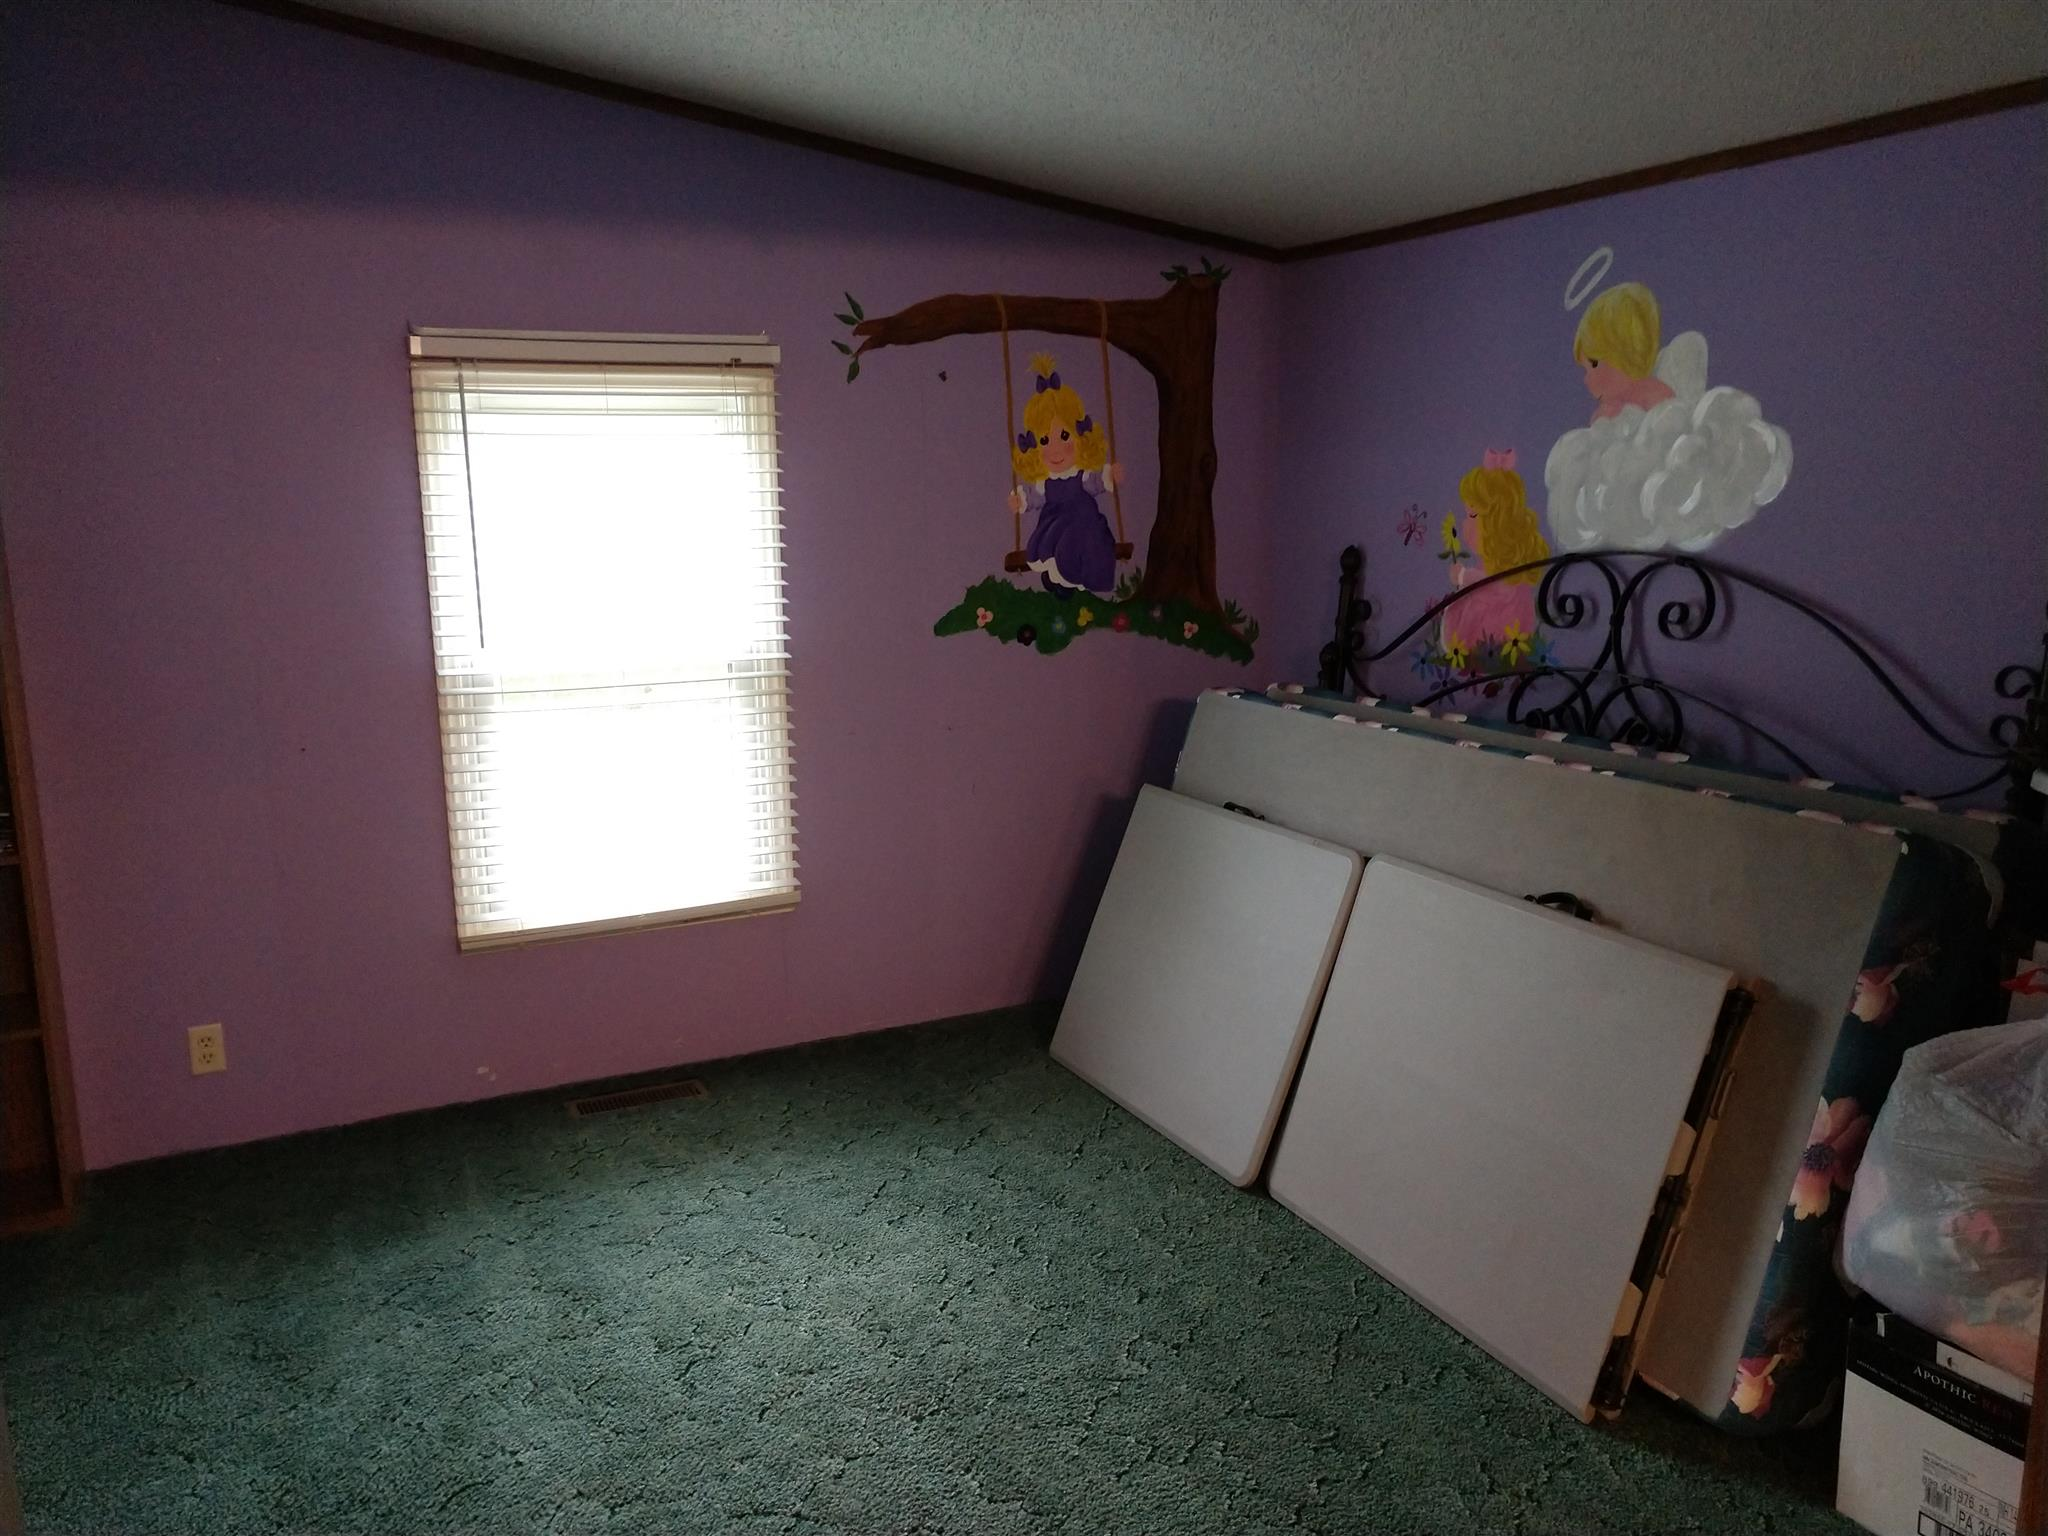 197 Switchboard Rd - photo 19